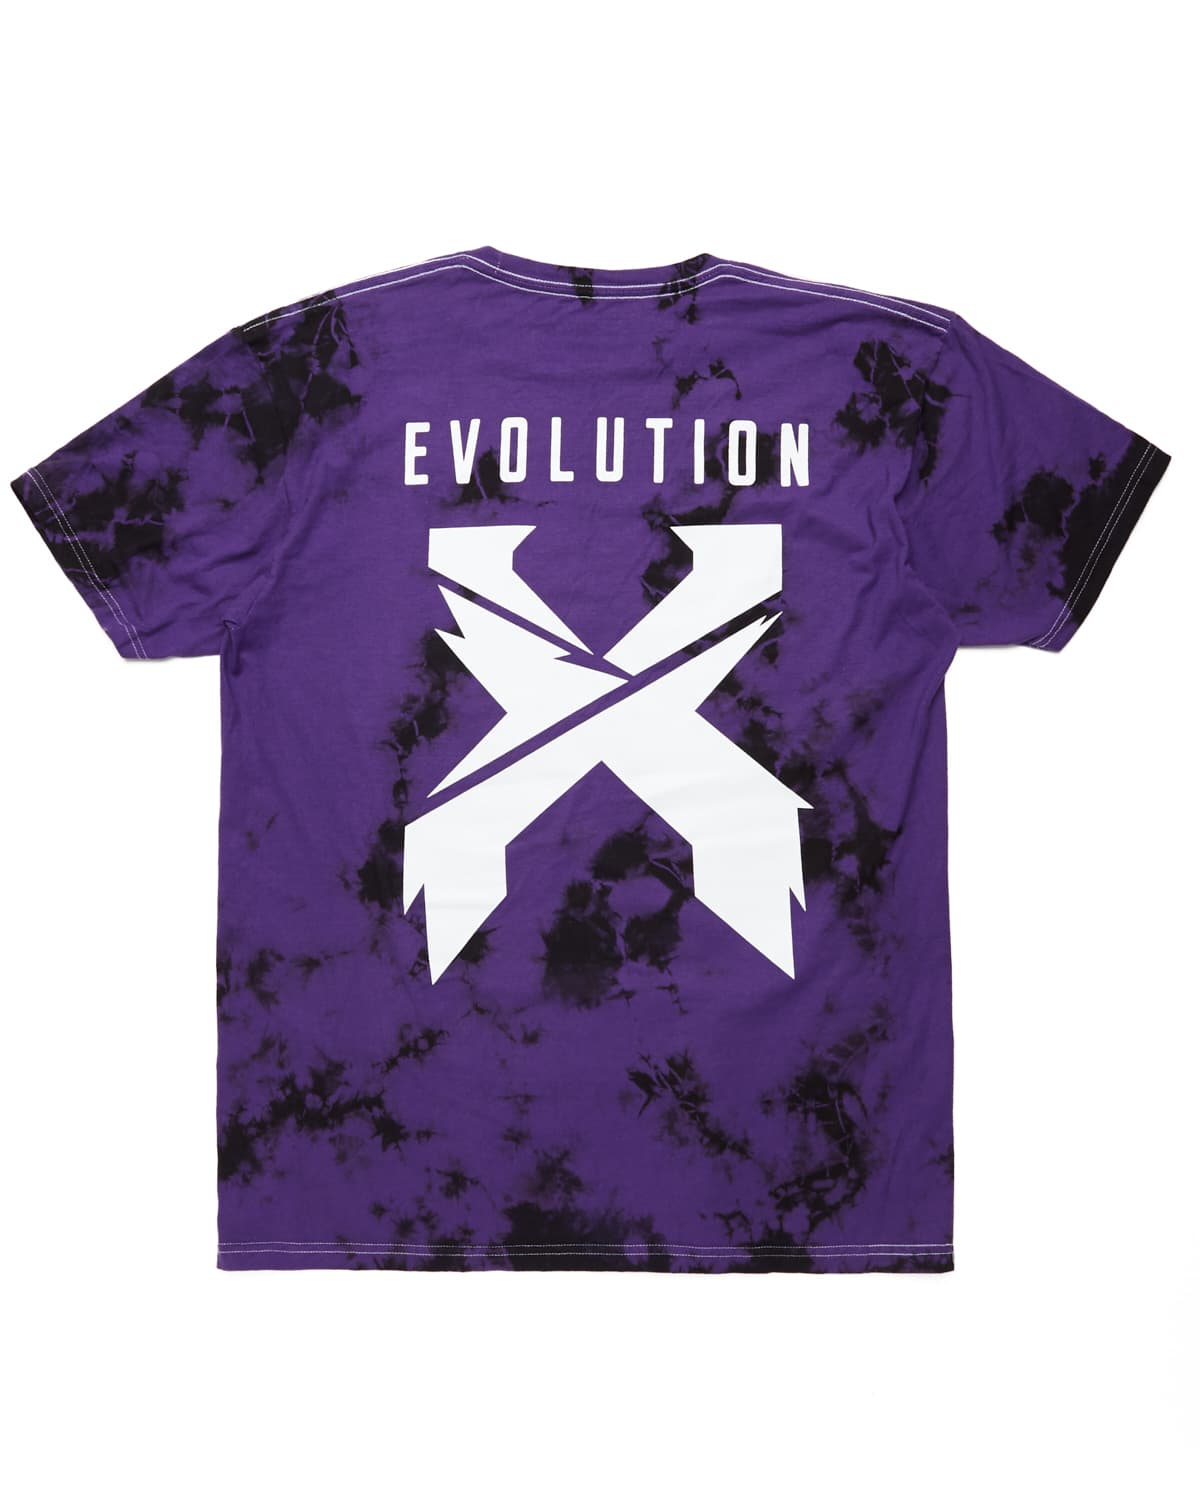 Evolution Tour Tie Dye Tee - Purple/Black